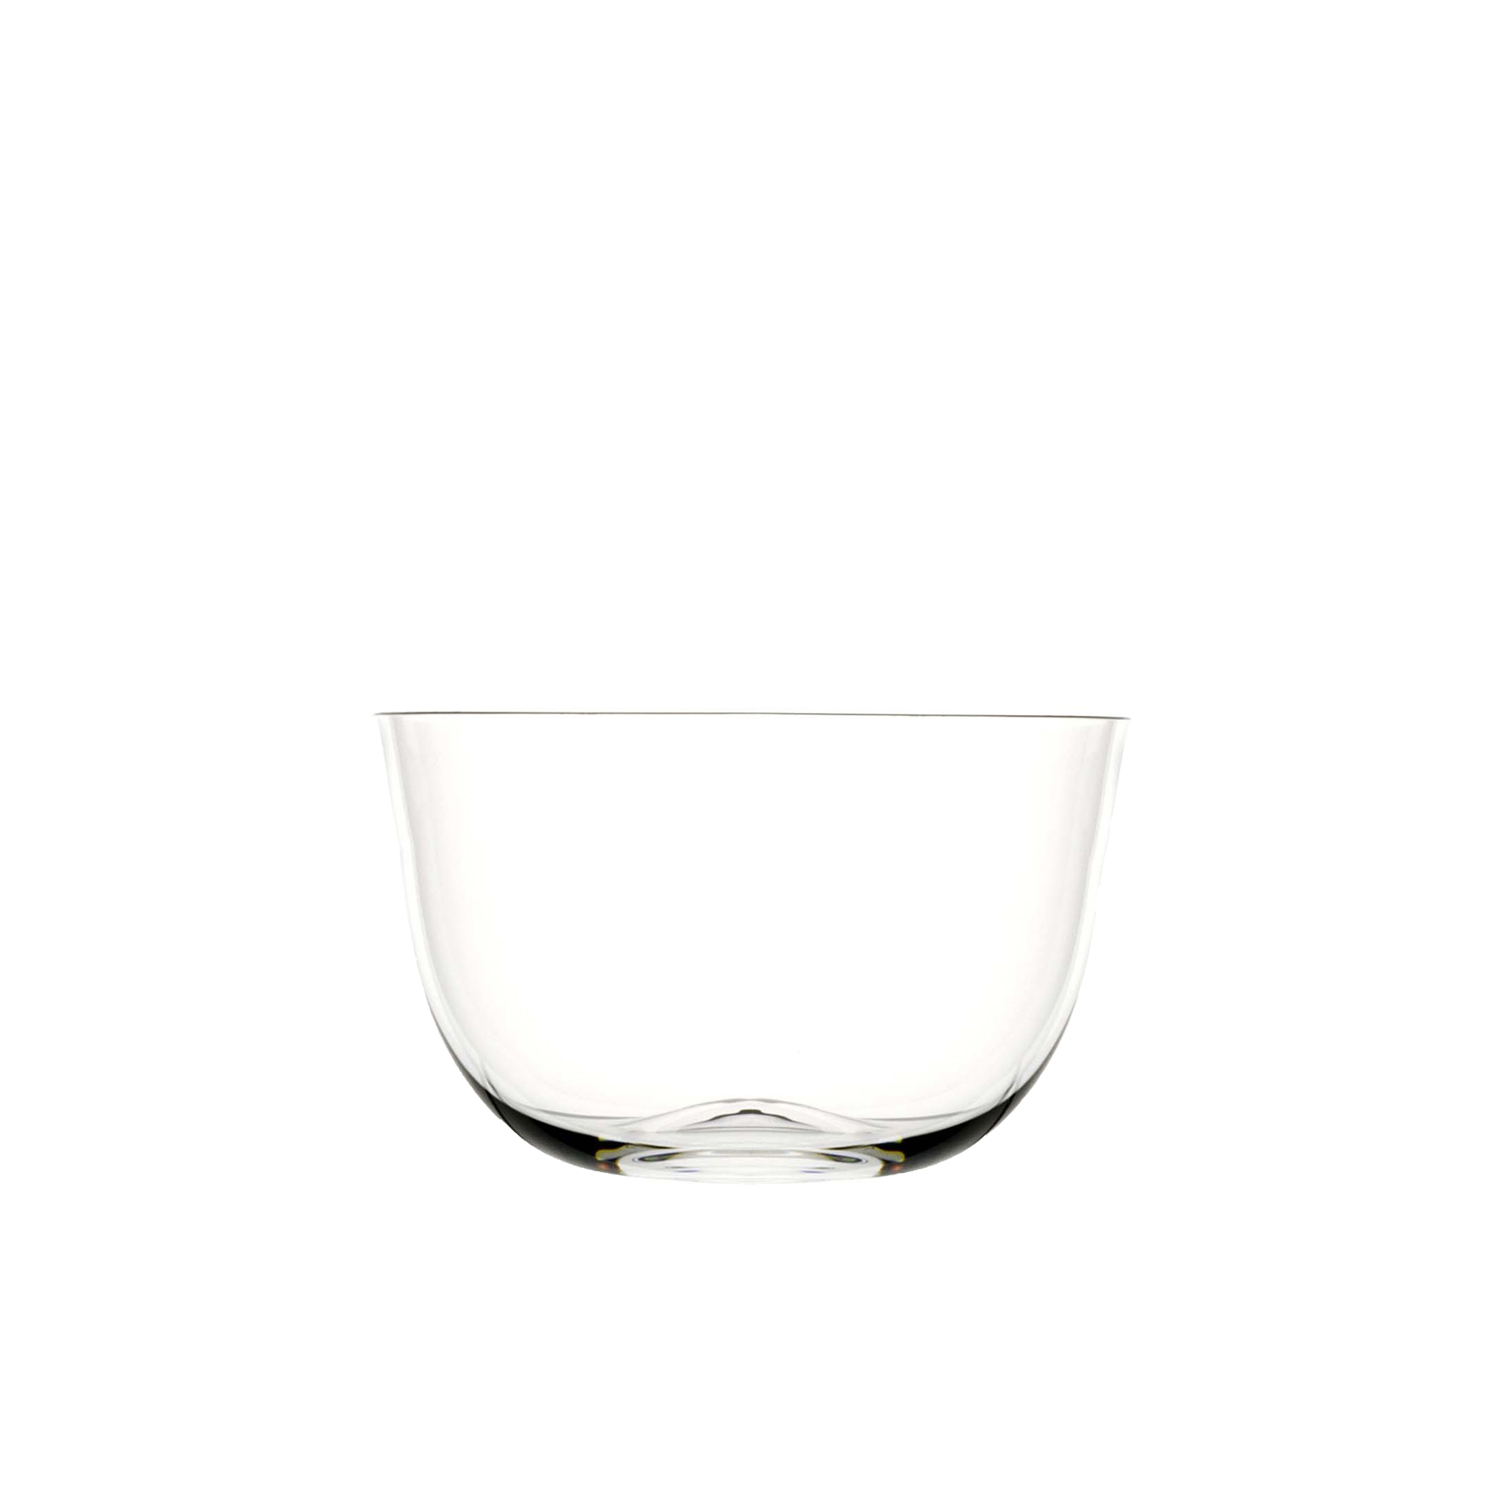 Drinking Set No.238 Finger Bowl without Stem - Set of 6 - The perfectly flowing contours of these original Josef Hoffmann shapes make this muslin glass series a classic. This elegantly balanced stemware was designed by Hoffmann for Lobmeyr already in 1917. The material - very fine (muslin) glass, mouth-blown in wooden moulds provides perfect elegance for these glasses.  The minimum order is 6 pieces per order   Matter of Stuff